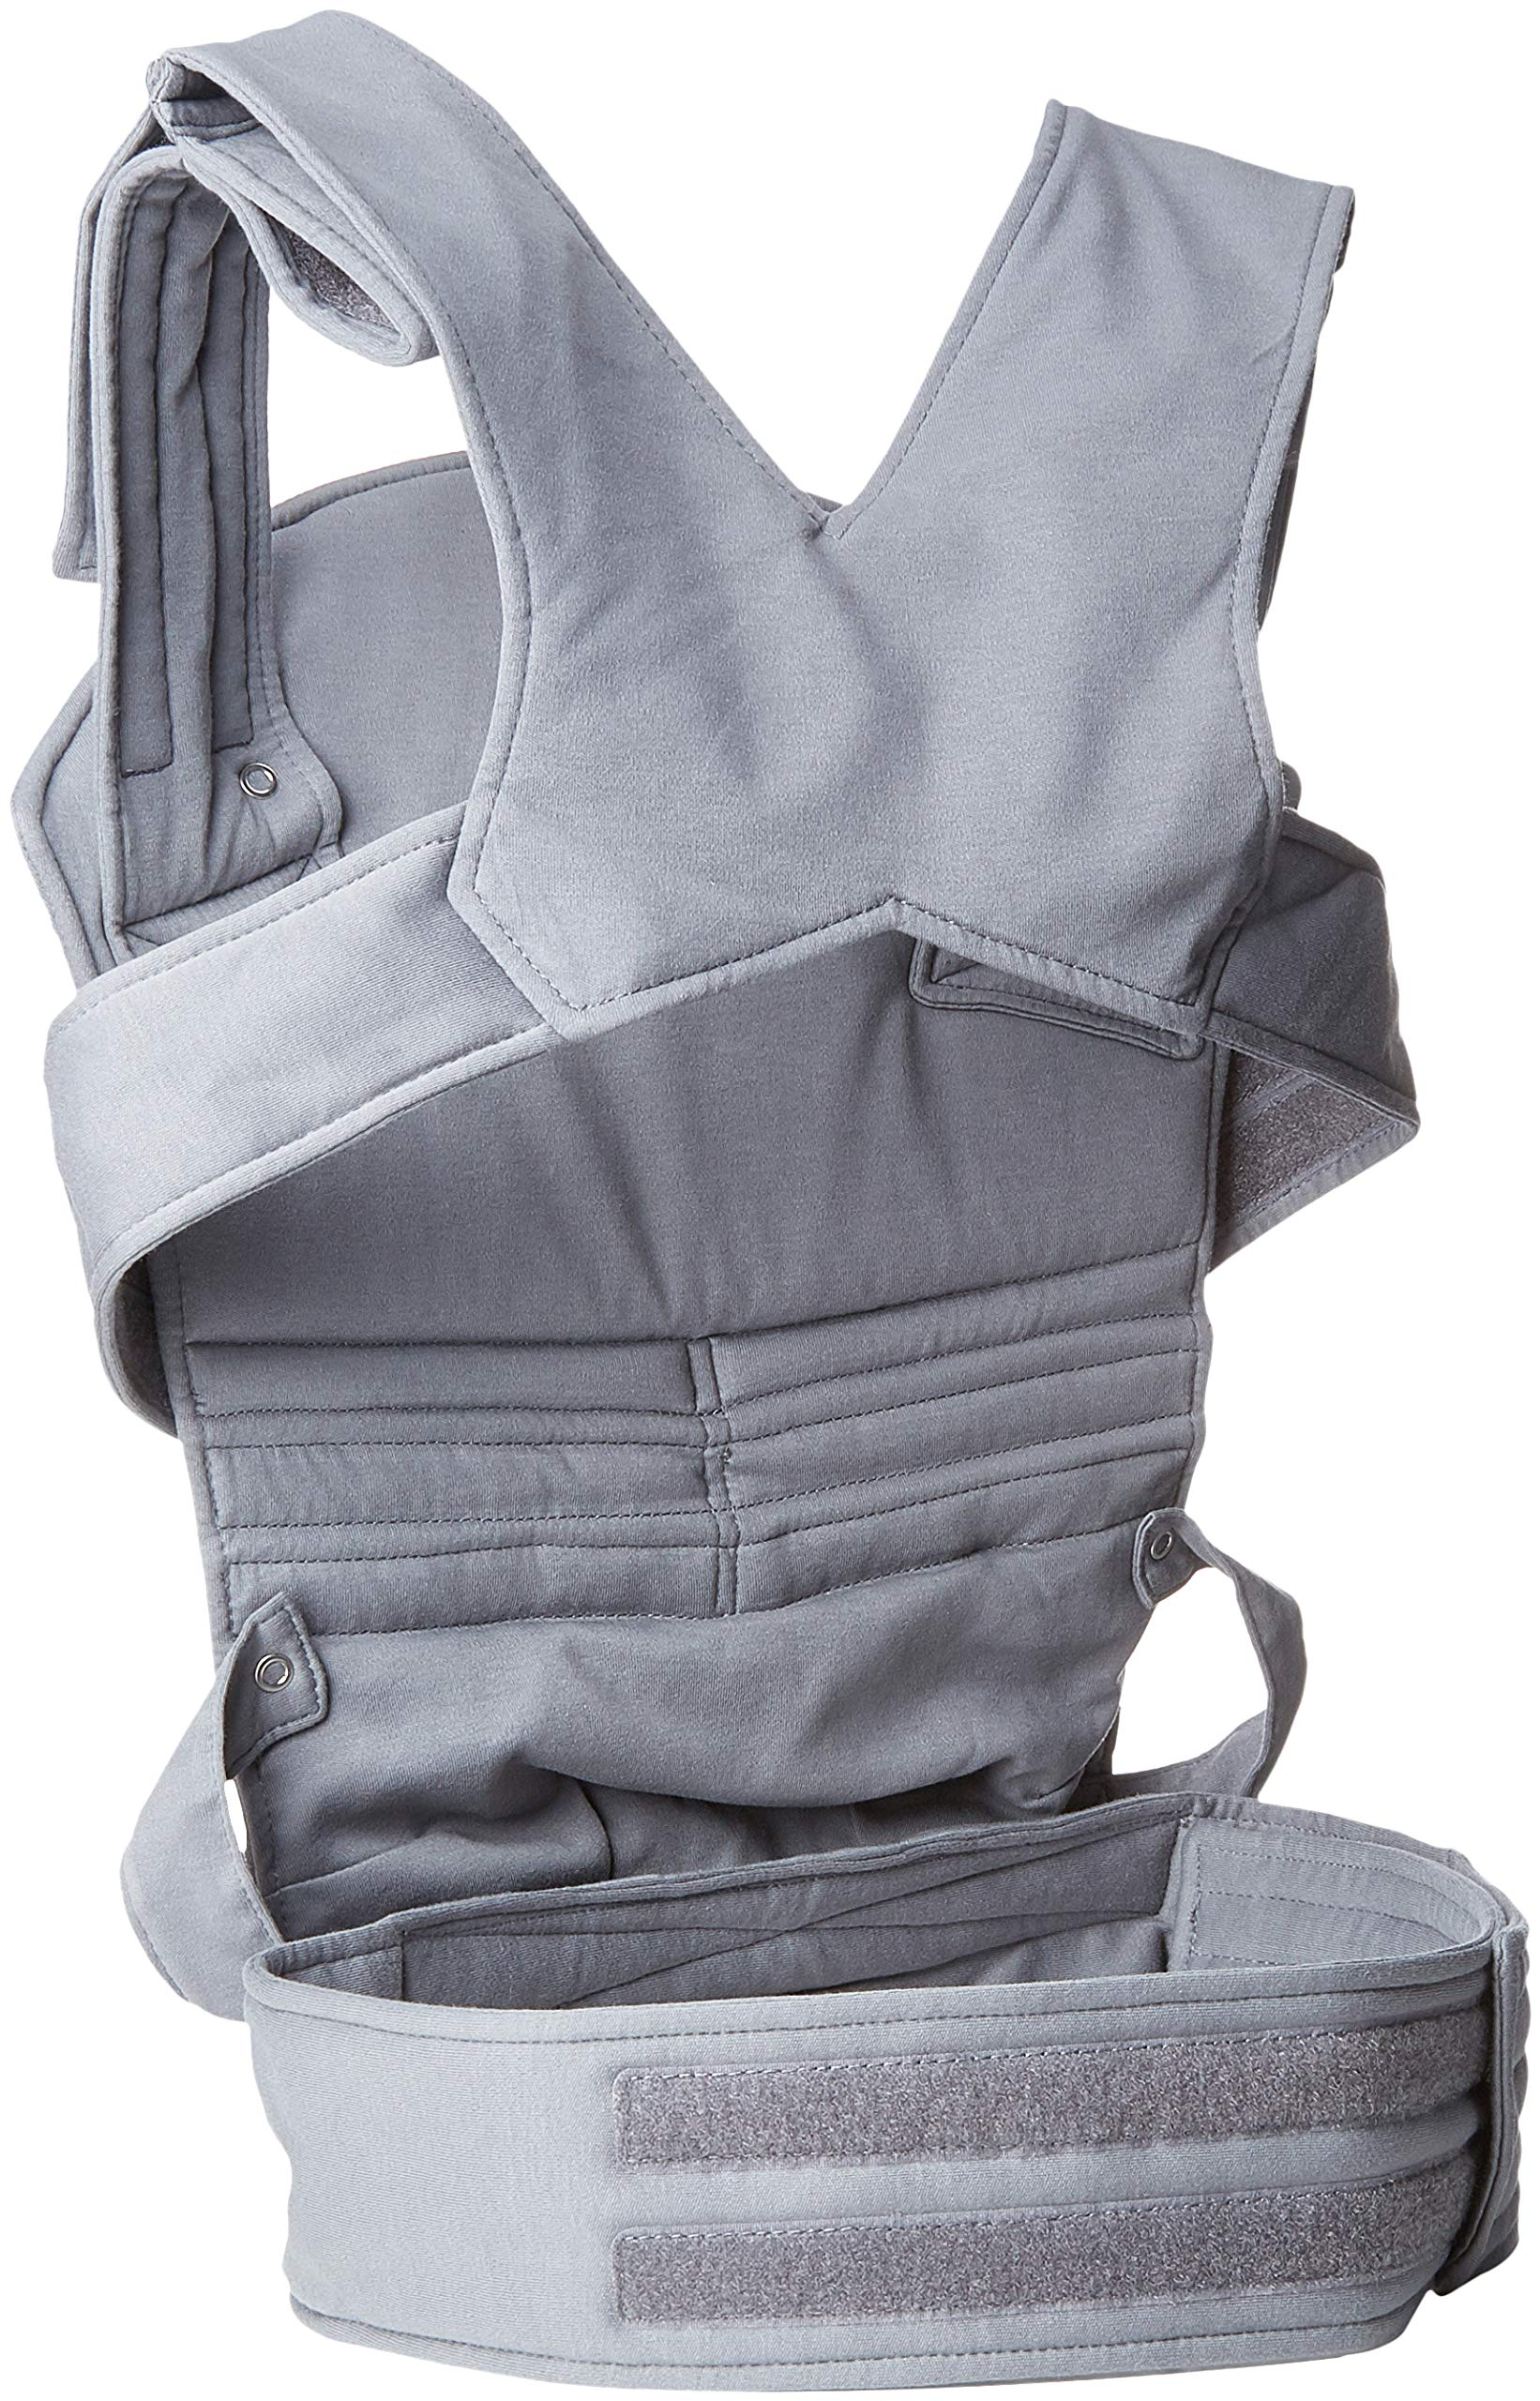 Wallaboo Baby carrier Ease, Hig Quality, Easy Adjustable and Ergonomic Front Carrier, 2 carrying poitions, Strong 100% cotton, Newborn 8lbs to 33lbs, Colour: Grey Wallaboo Ergonomic carrying with wide leg position (m-position) Sturdy waist belt and padded shoulder straps. Age suitability: babies from 3,5kg / 8 lbs to 15kg / 33 lbs. Walla boo baby carrier is made with 100% breathable cotton, makes baby feel comfortable and cozy 2